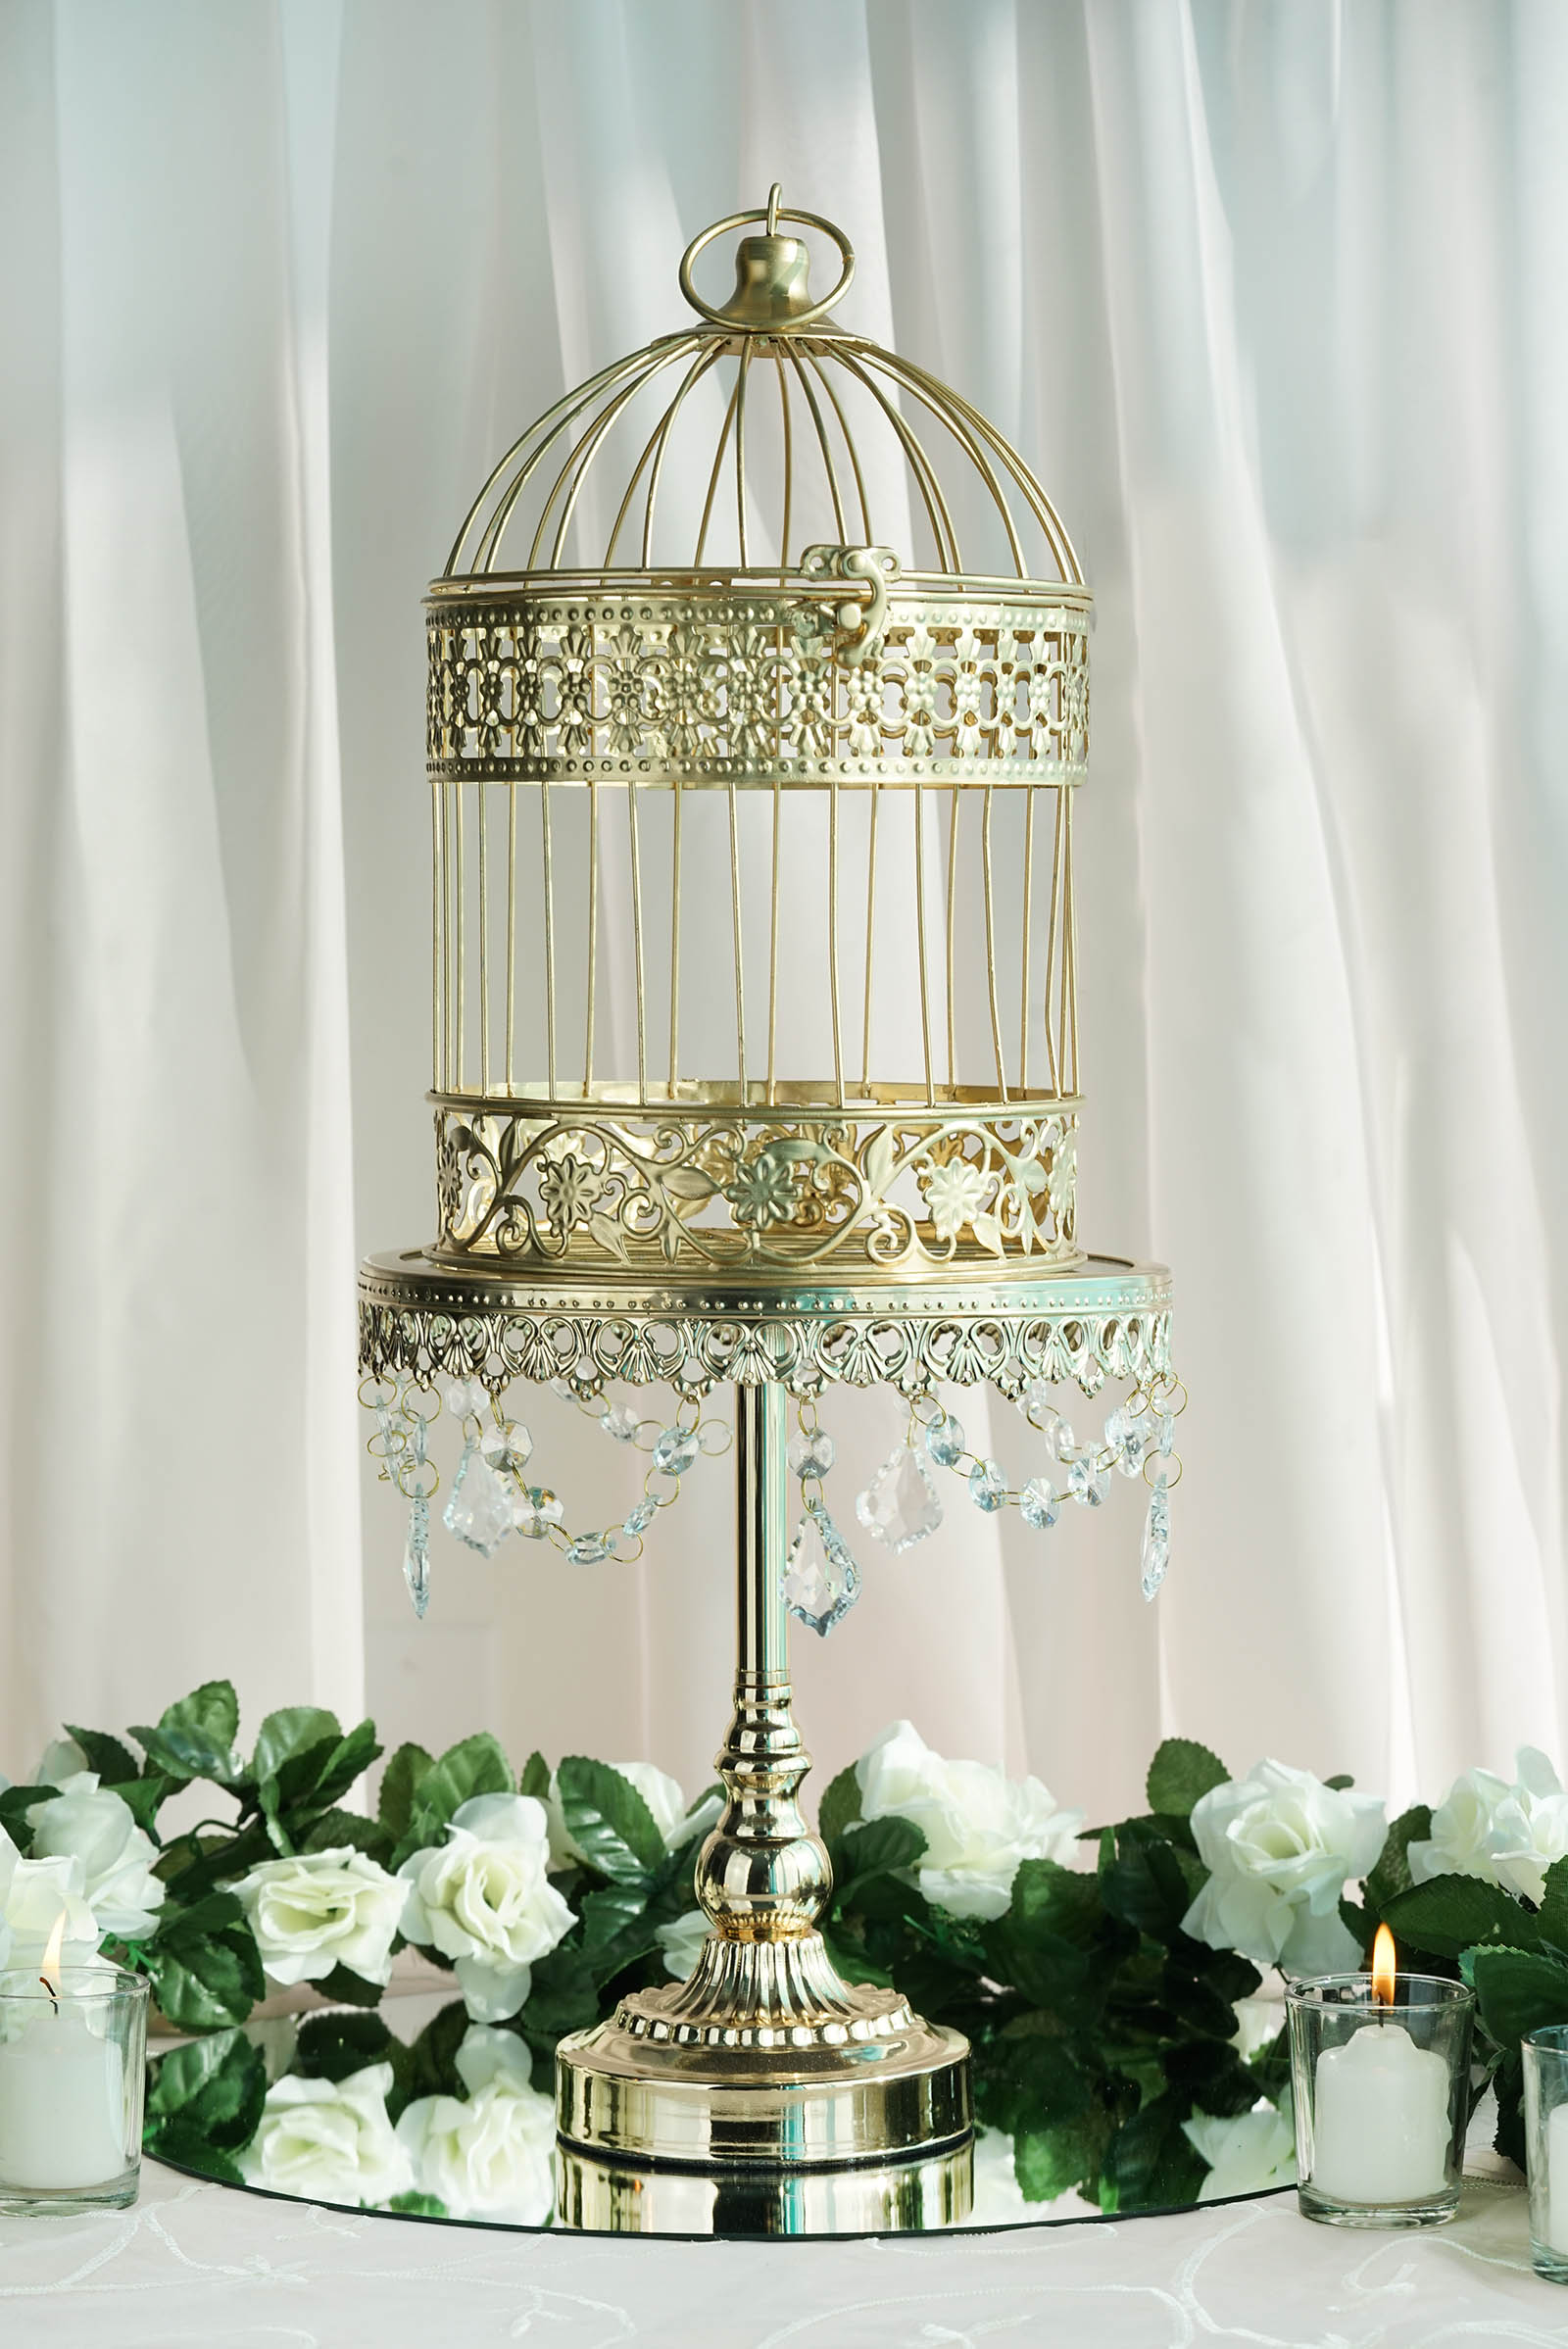 2 Sets Metallic Gold Bird Cage Wedding Place Card Holder Centerpiece ...